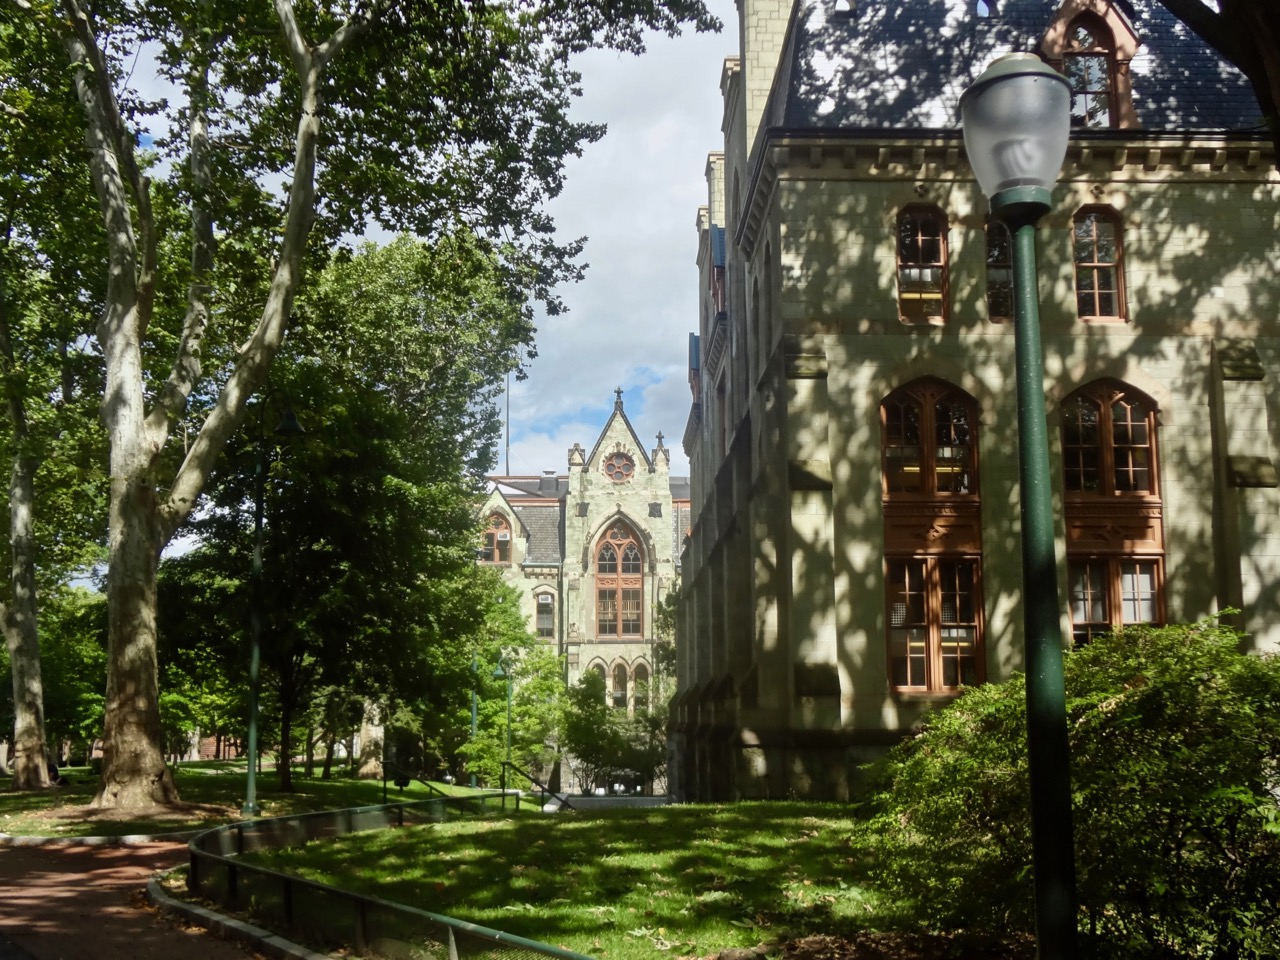 View of a green building in Upenn